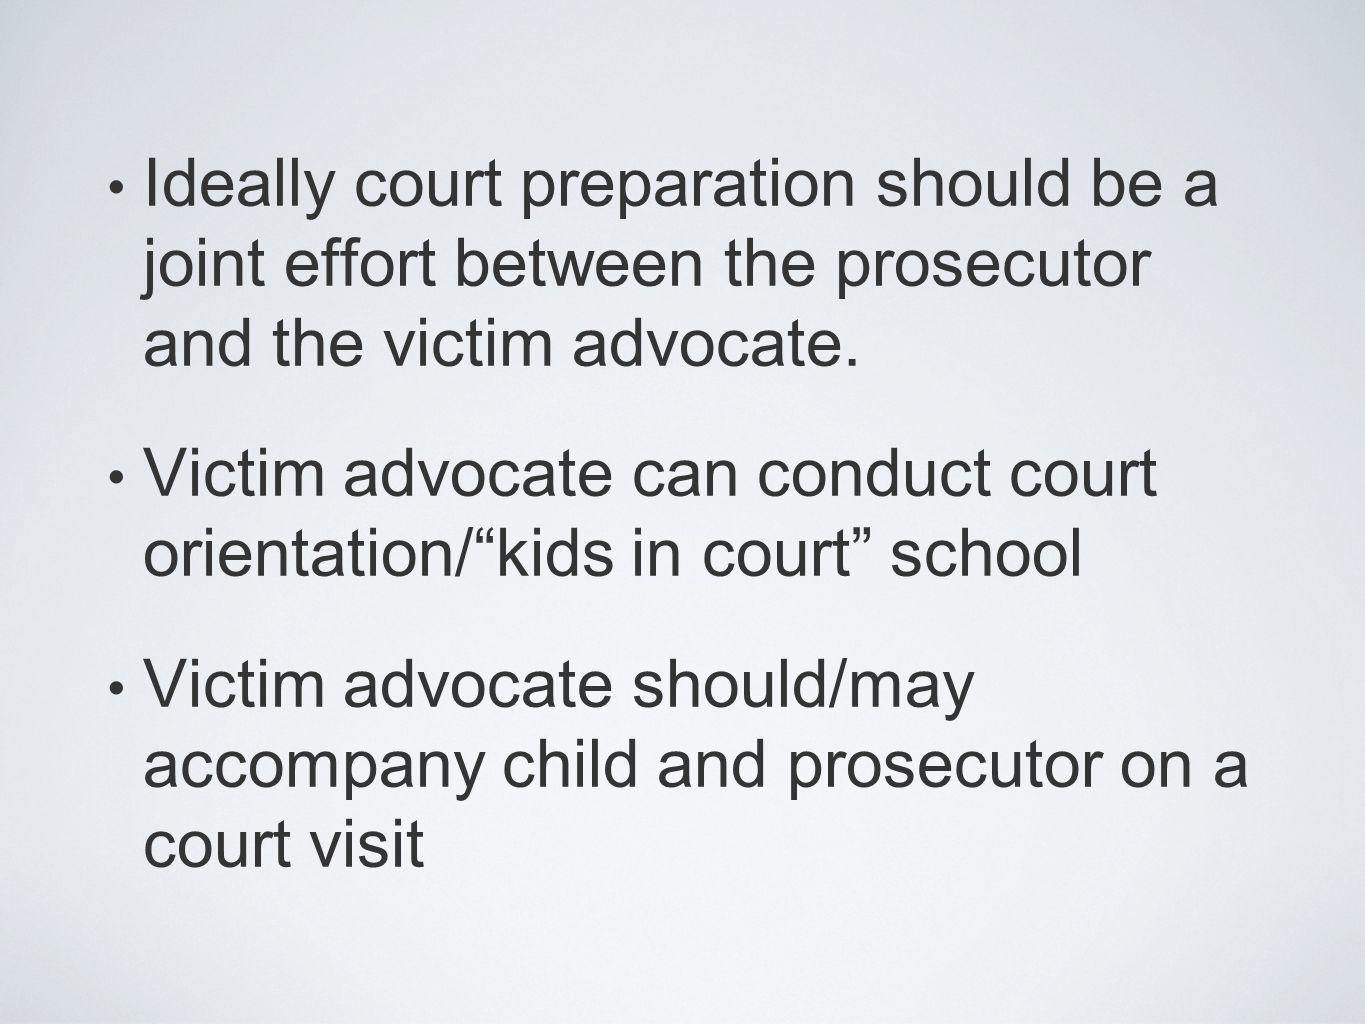 Victim advocate can conduct court orientation/ kids in court school